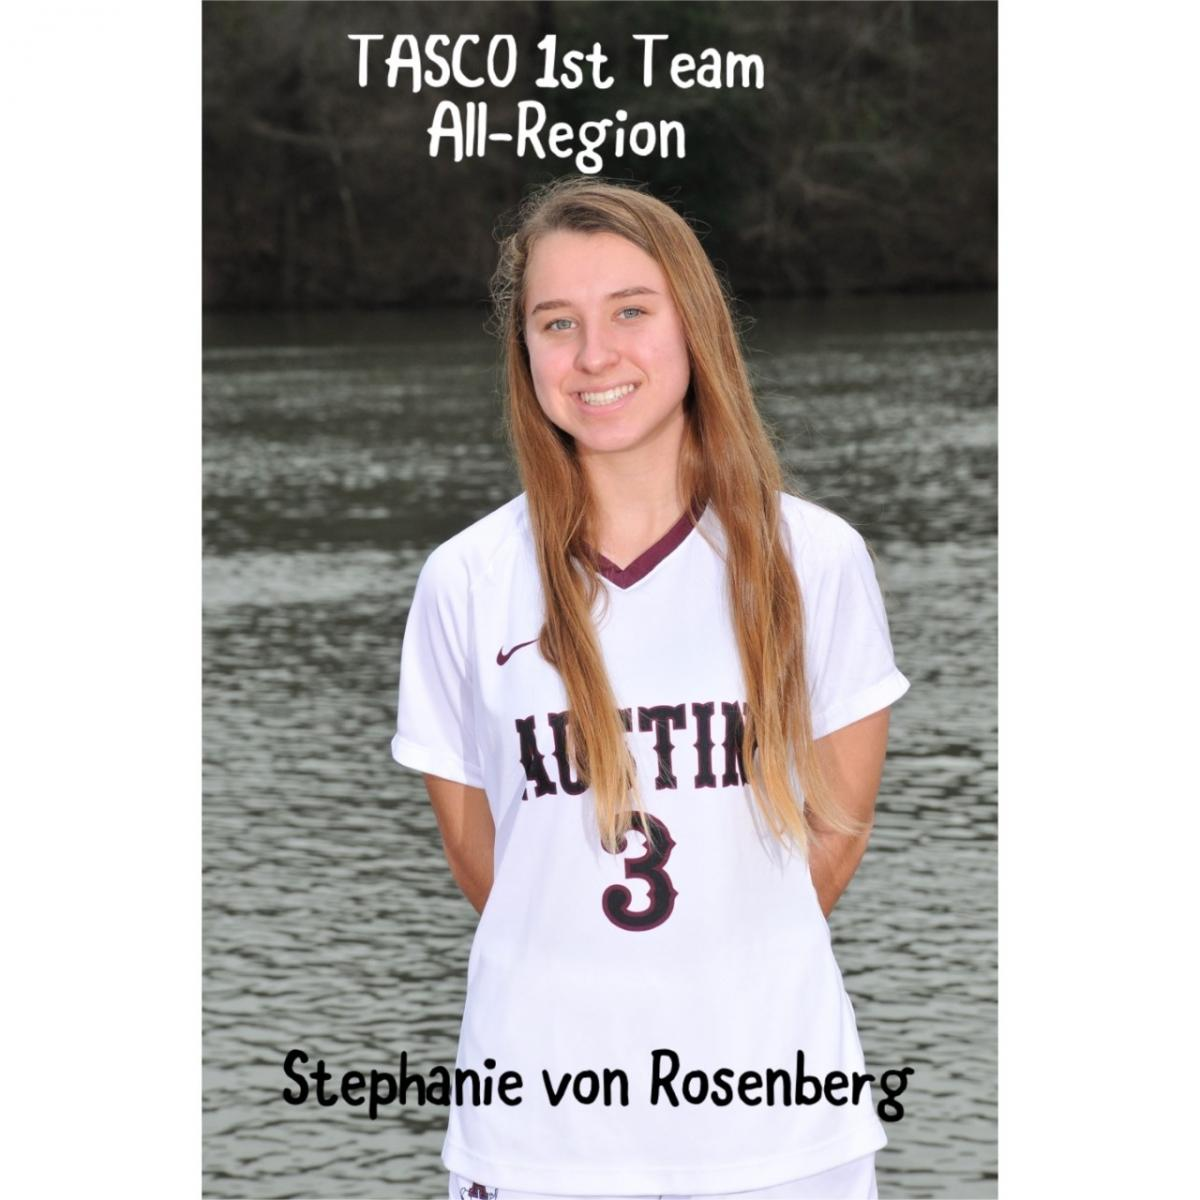 Stephanie von Rosenberg named to TASCO All-Region Team